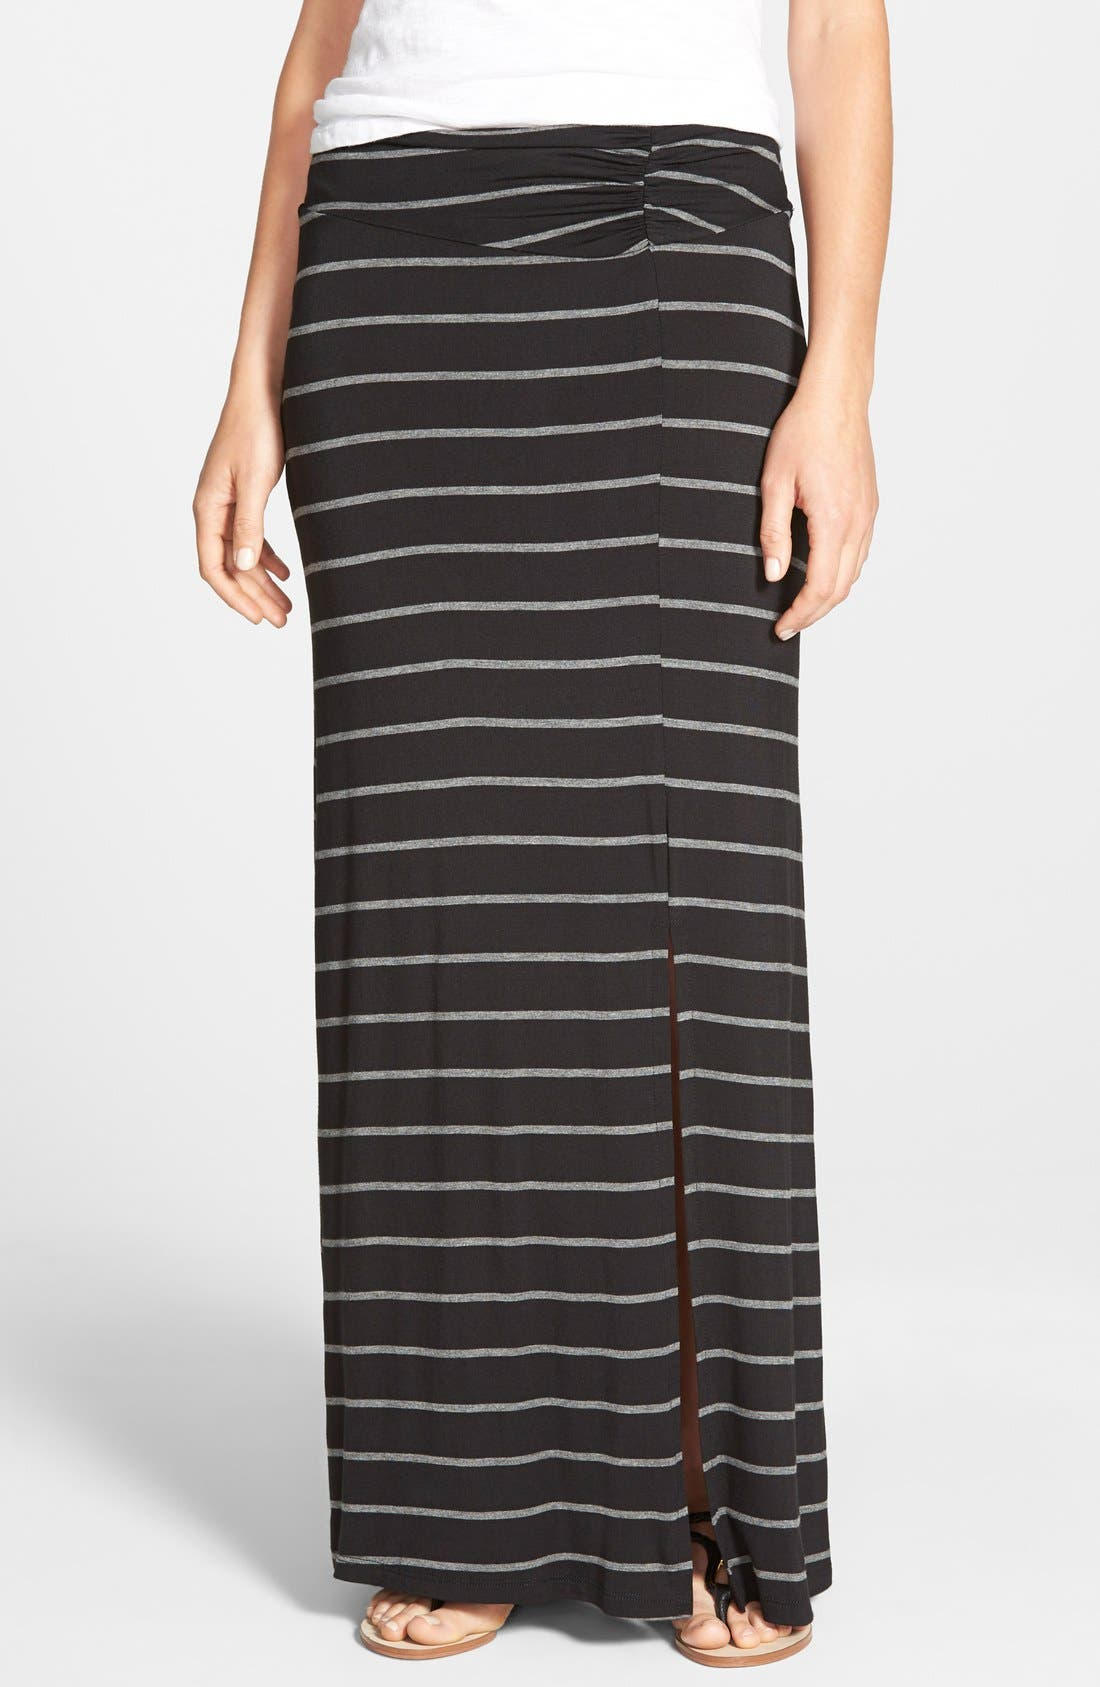 Alternate Image 1 Selected - Bobeau Slit Maxi Skirt (Regular & Petite)